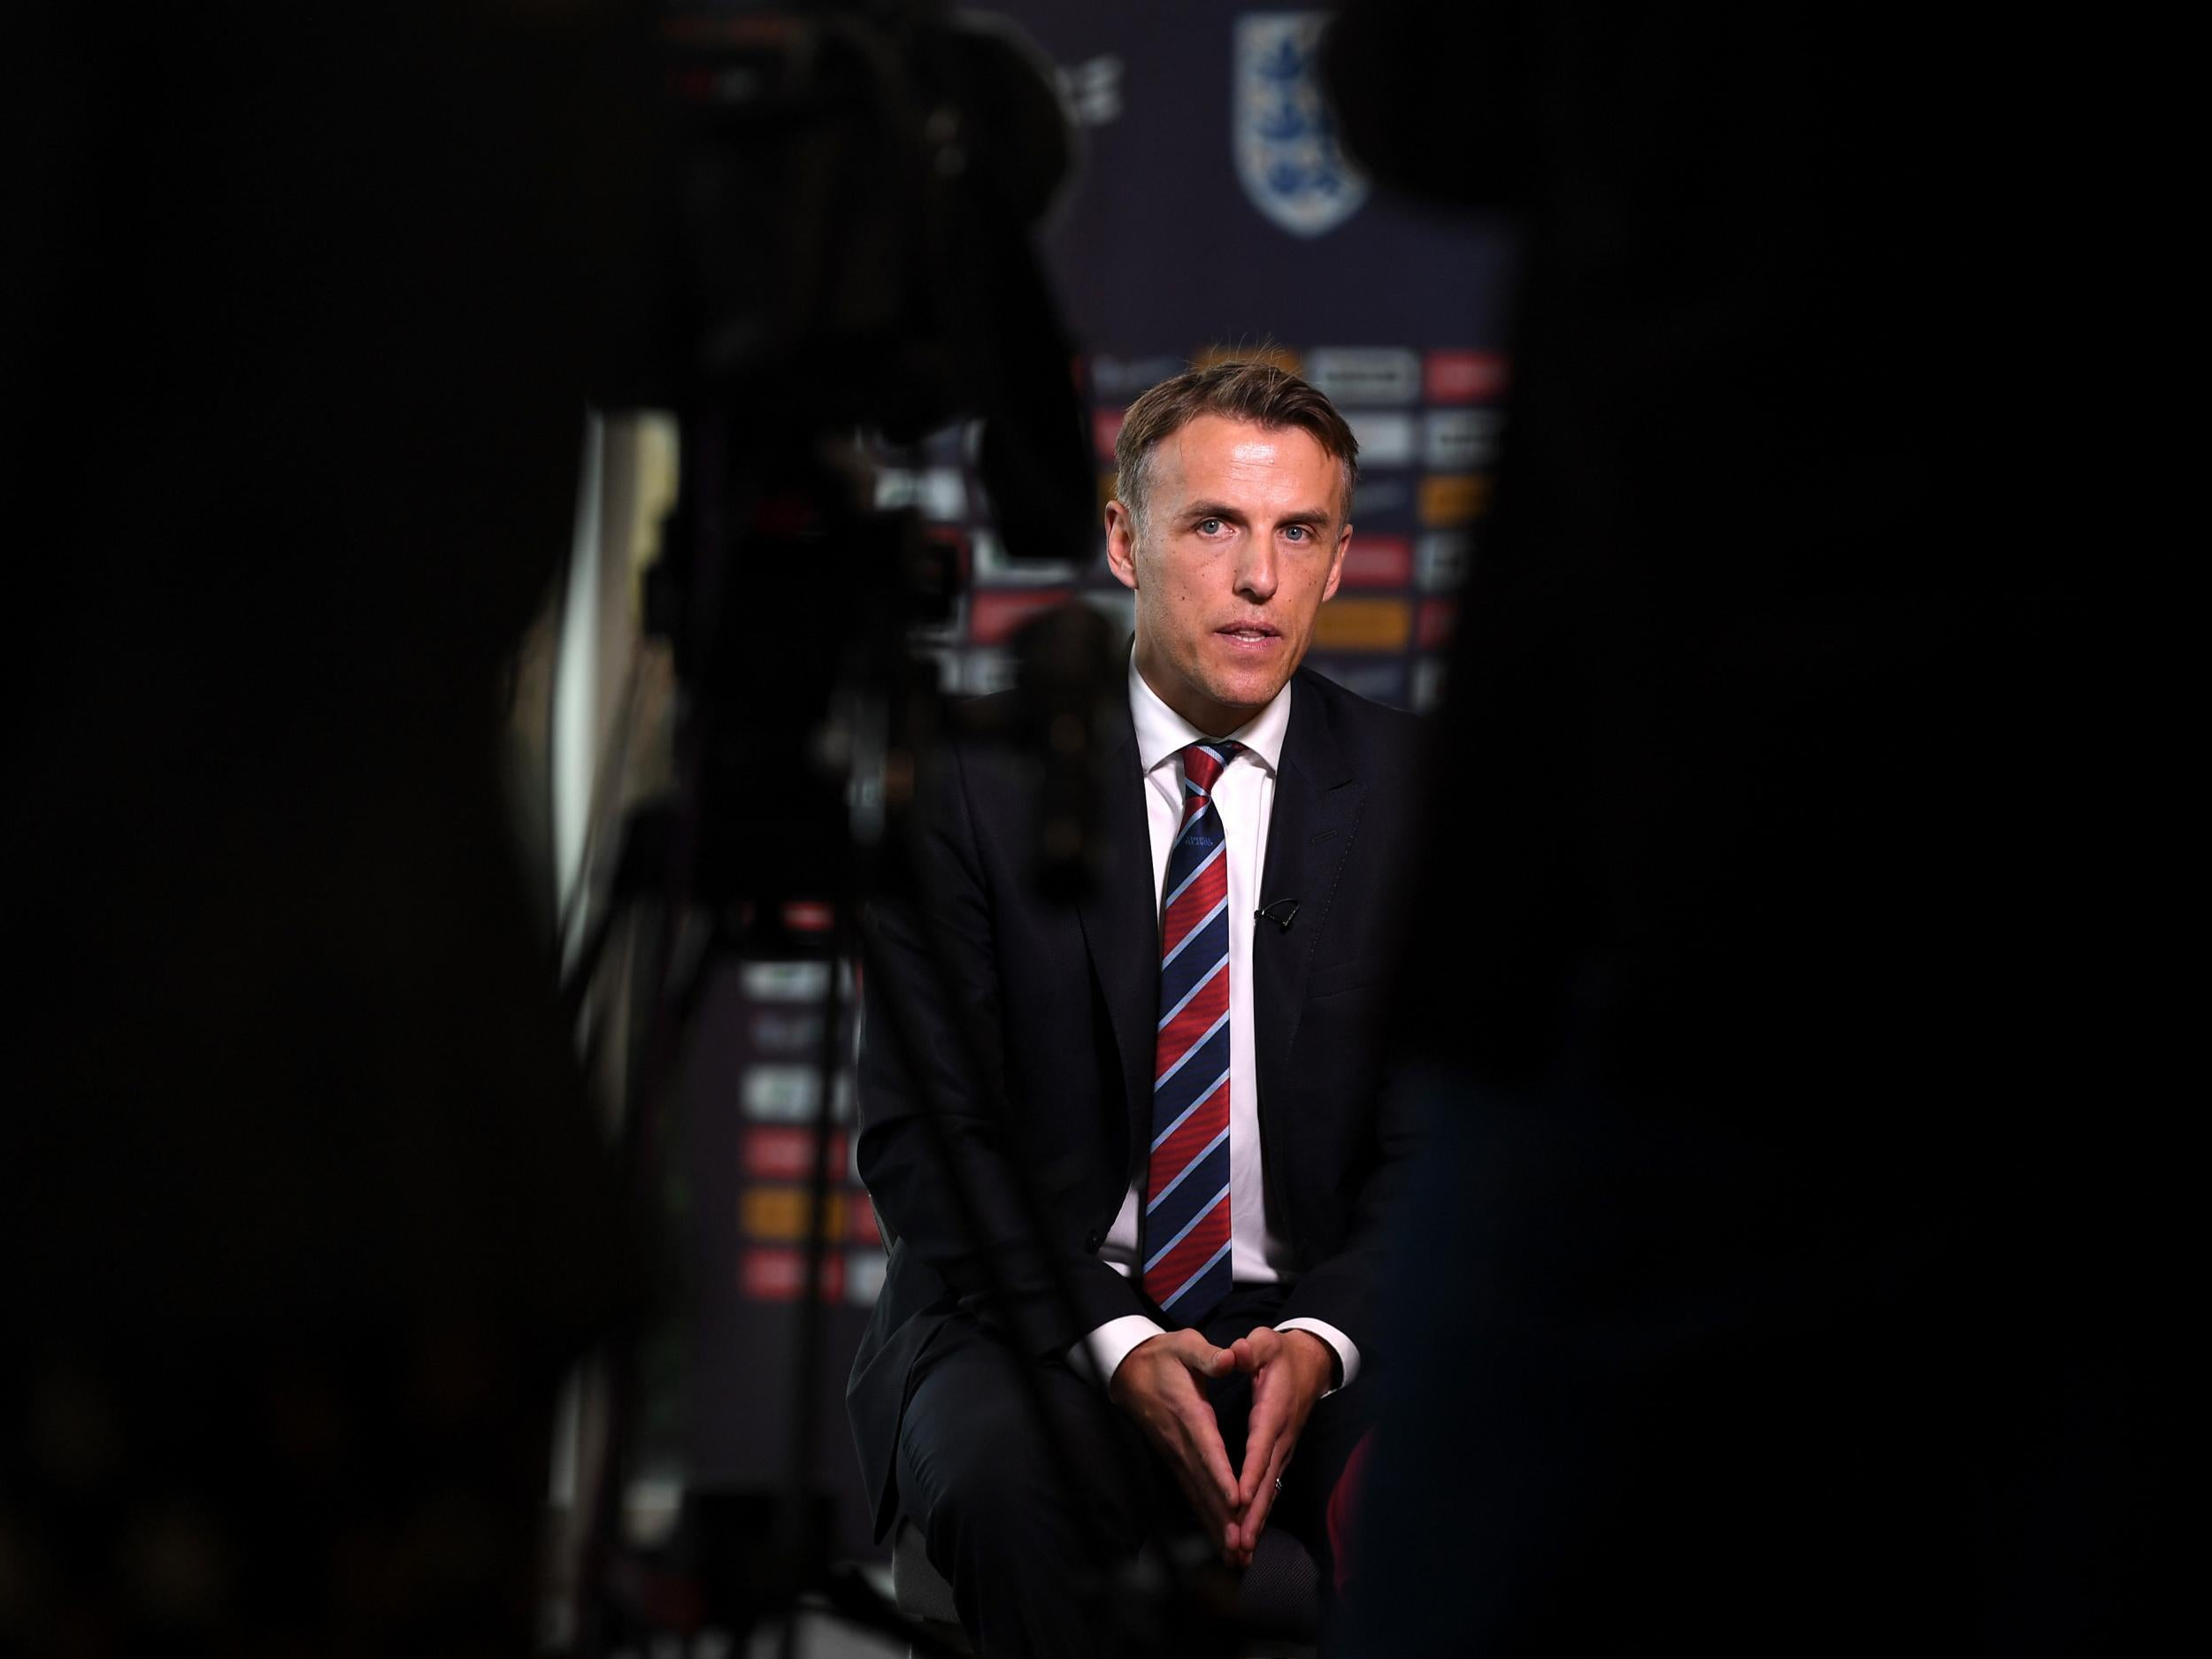 Phil Neville insists he got England job as he was best candidate and urges Manchester United to form women's team